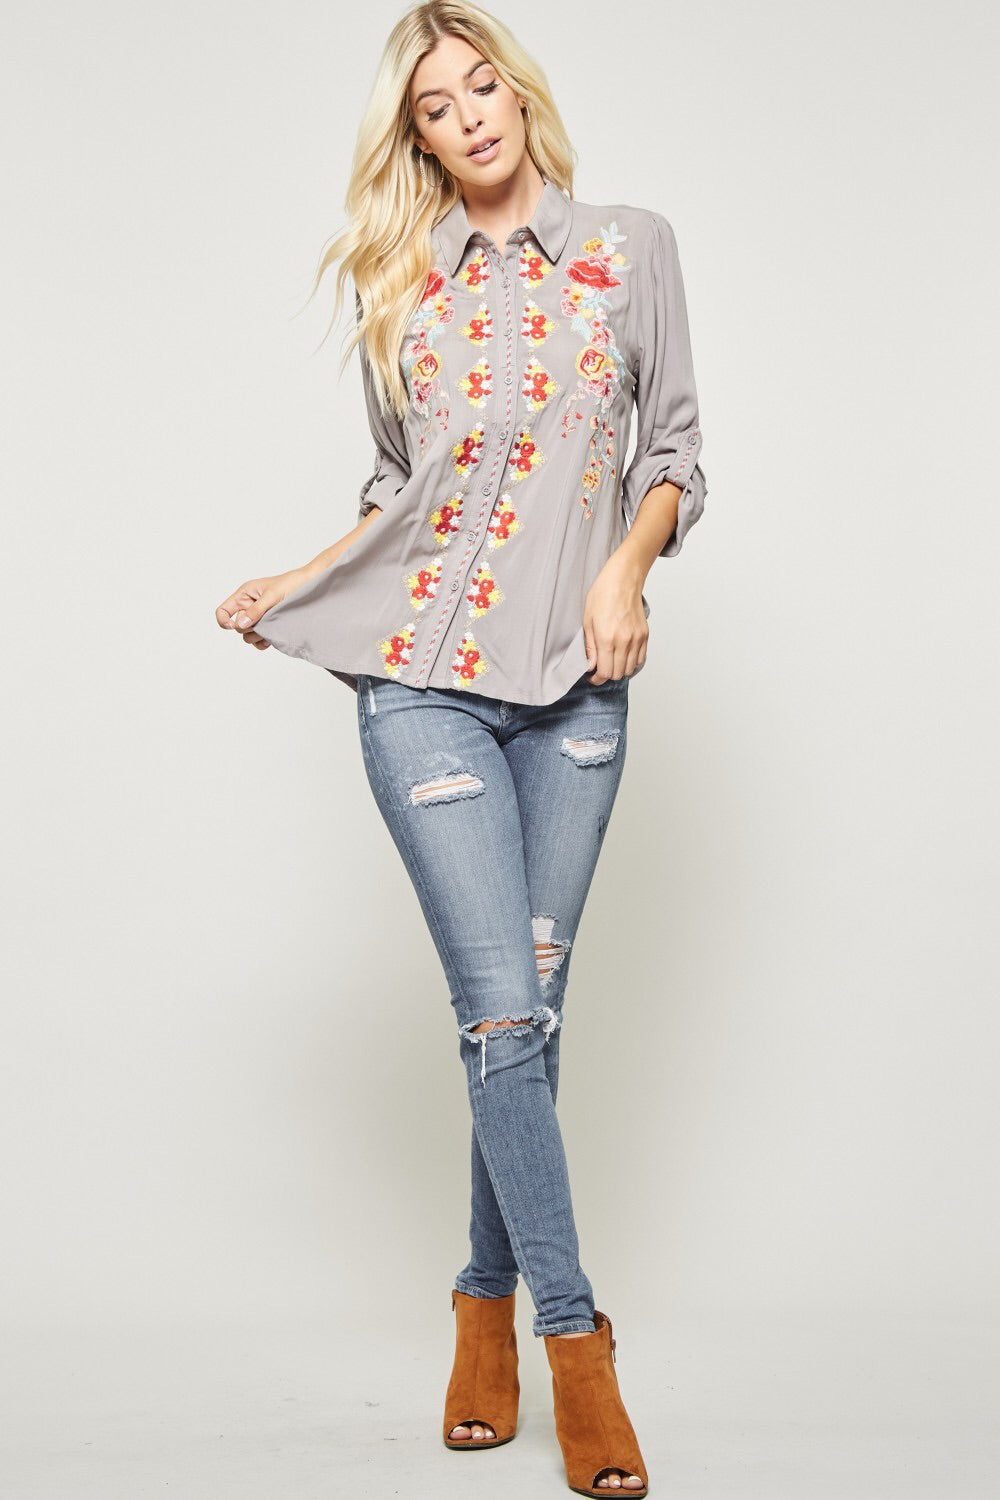 Classic Floral Embroidery Button Up